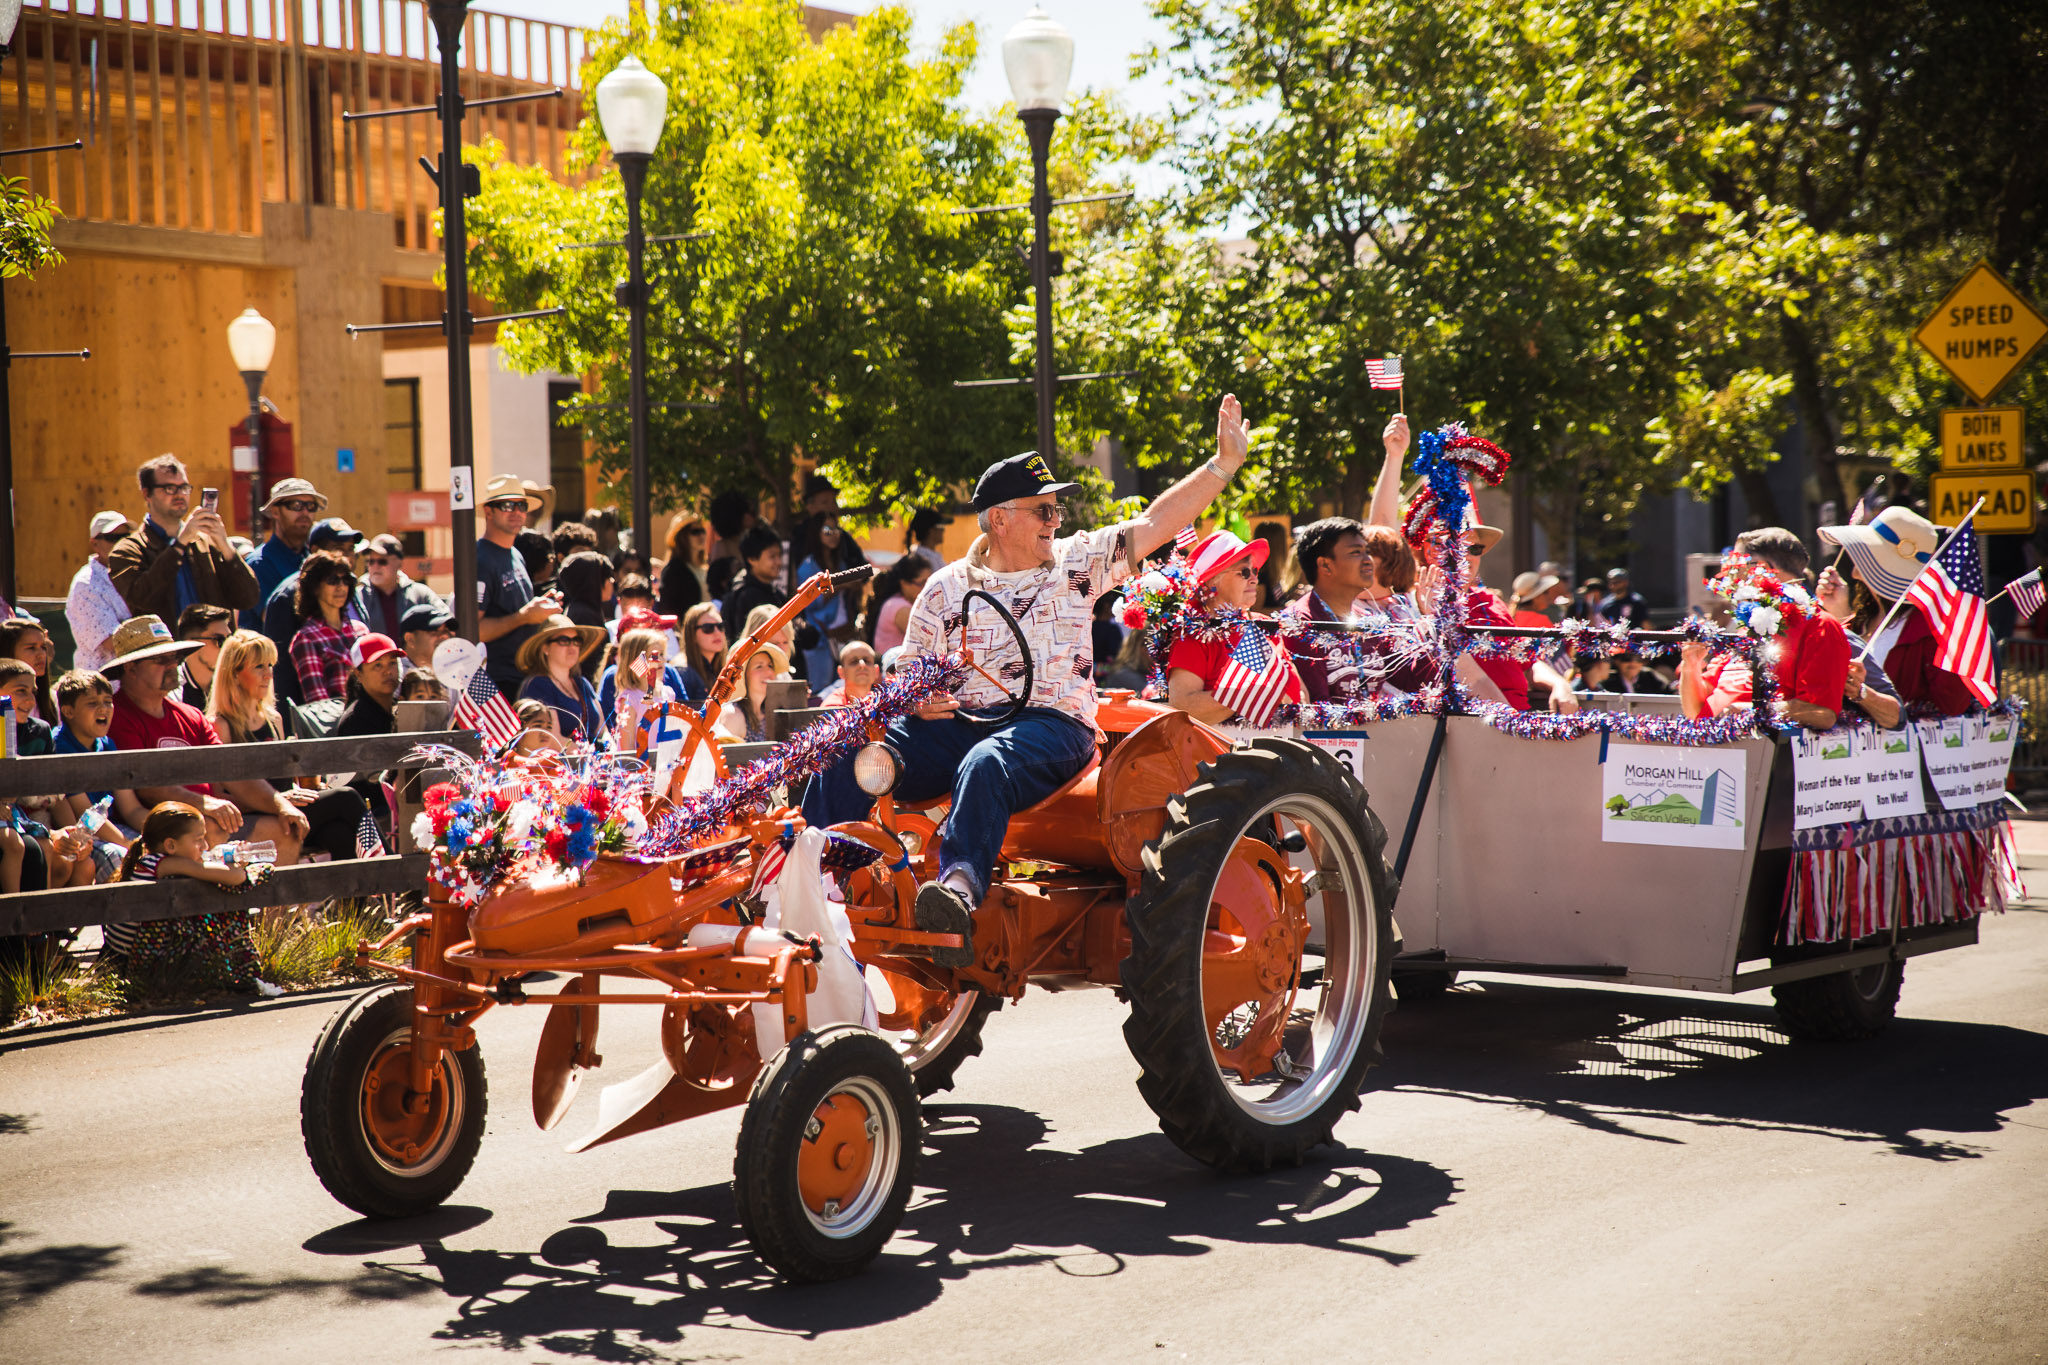 Archer_Inspired_Photography_Morgan_Hill_California_4th_of_july_parade-92.jpg